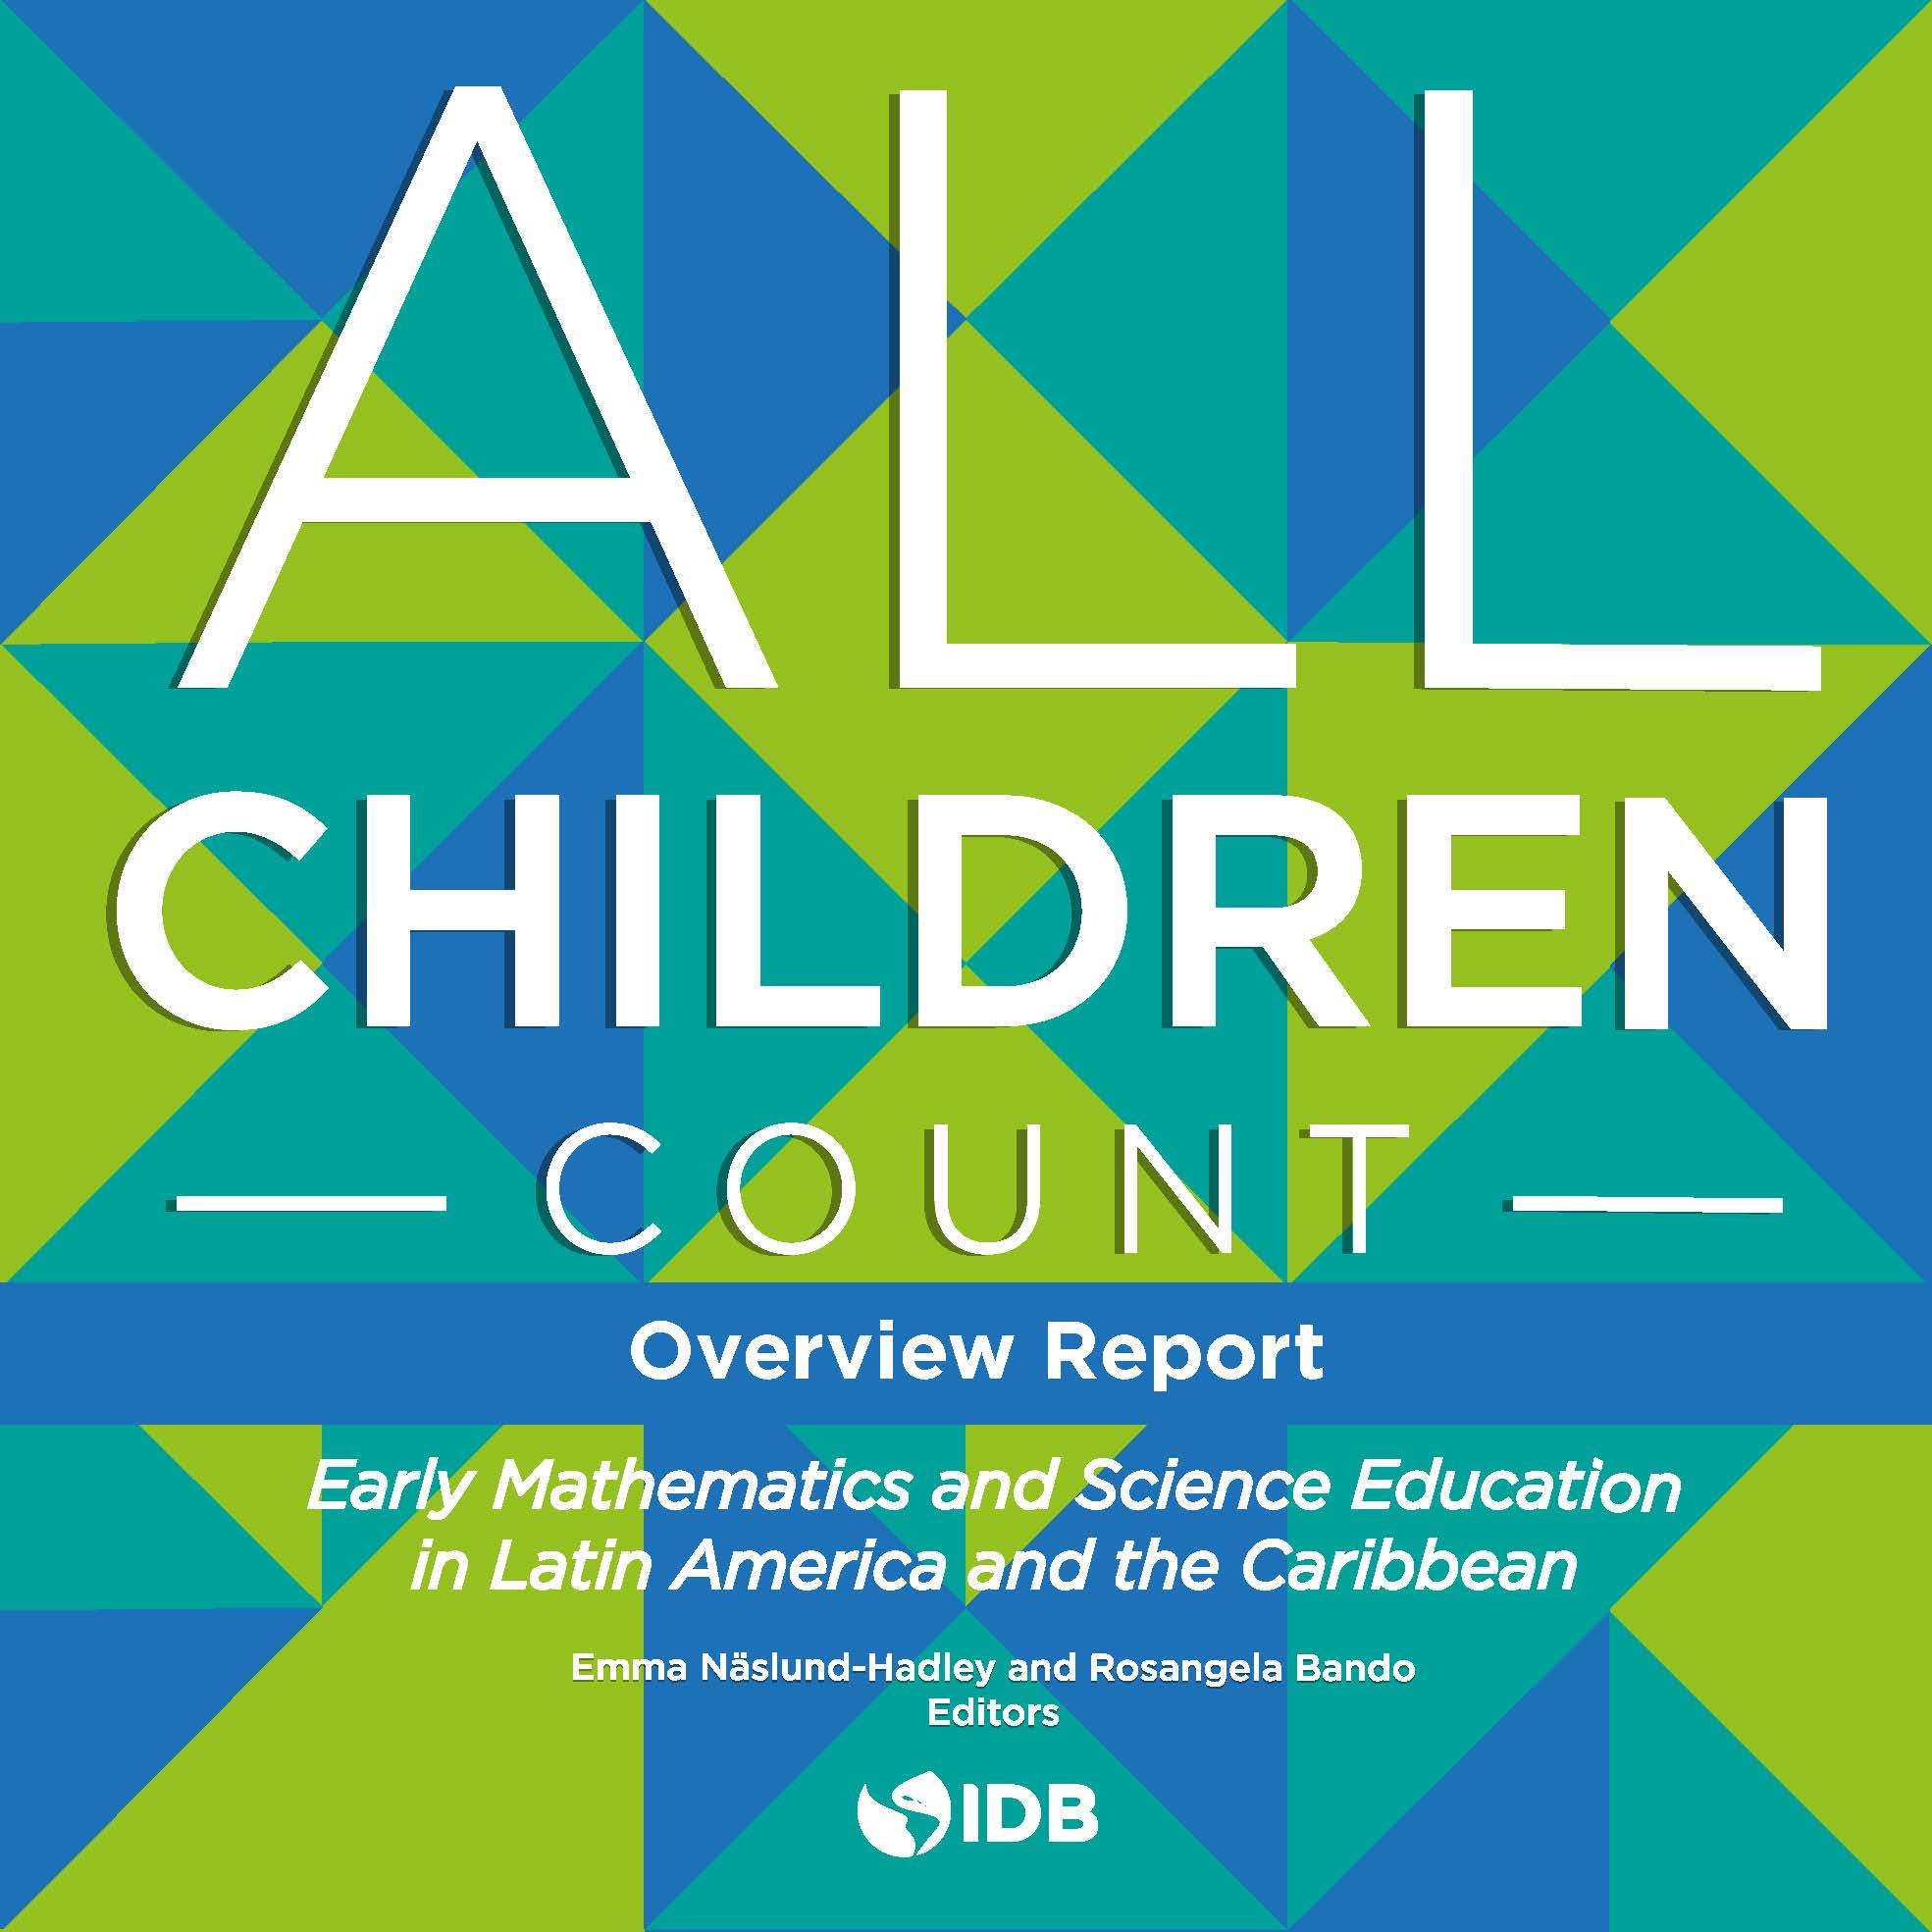 All-Children-Count-Early-Mathe-the-Caribbean-Overview-report 1.jpg